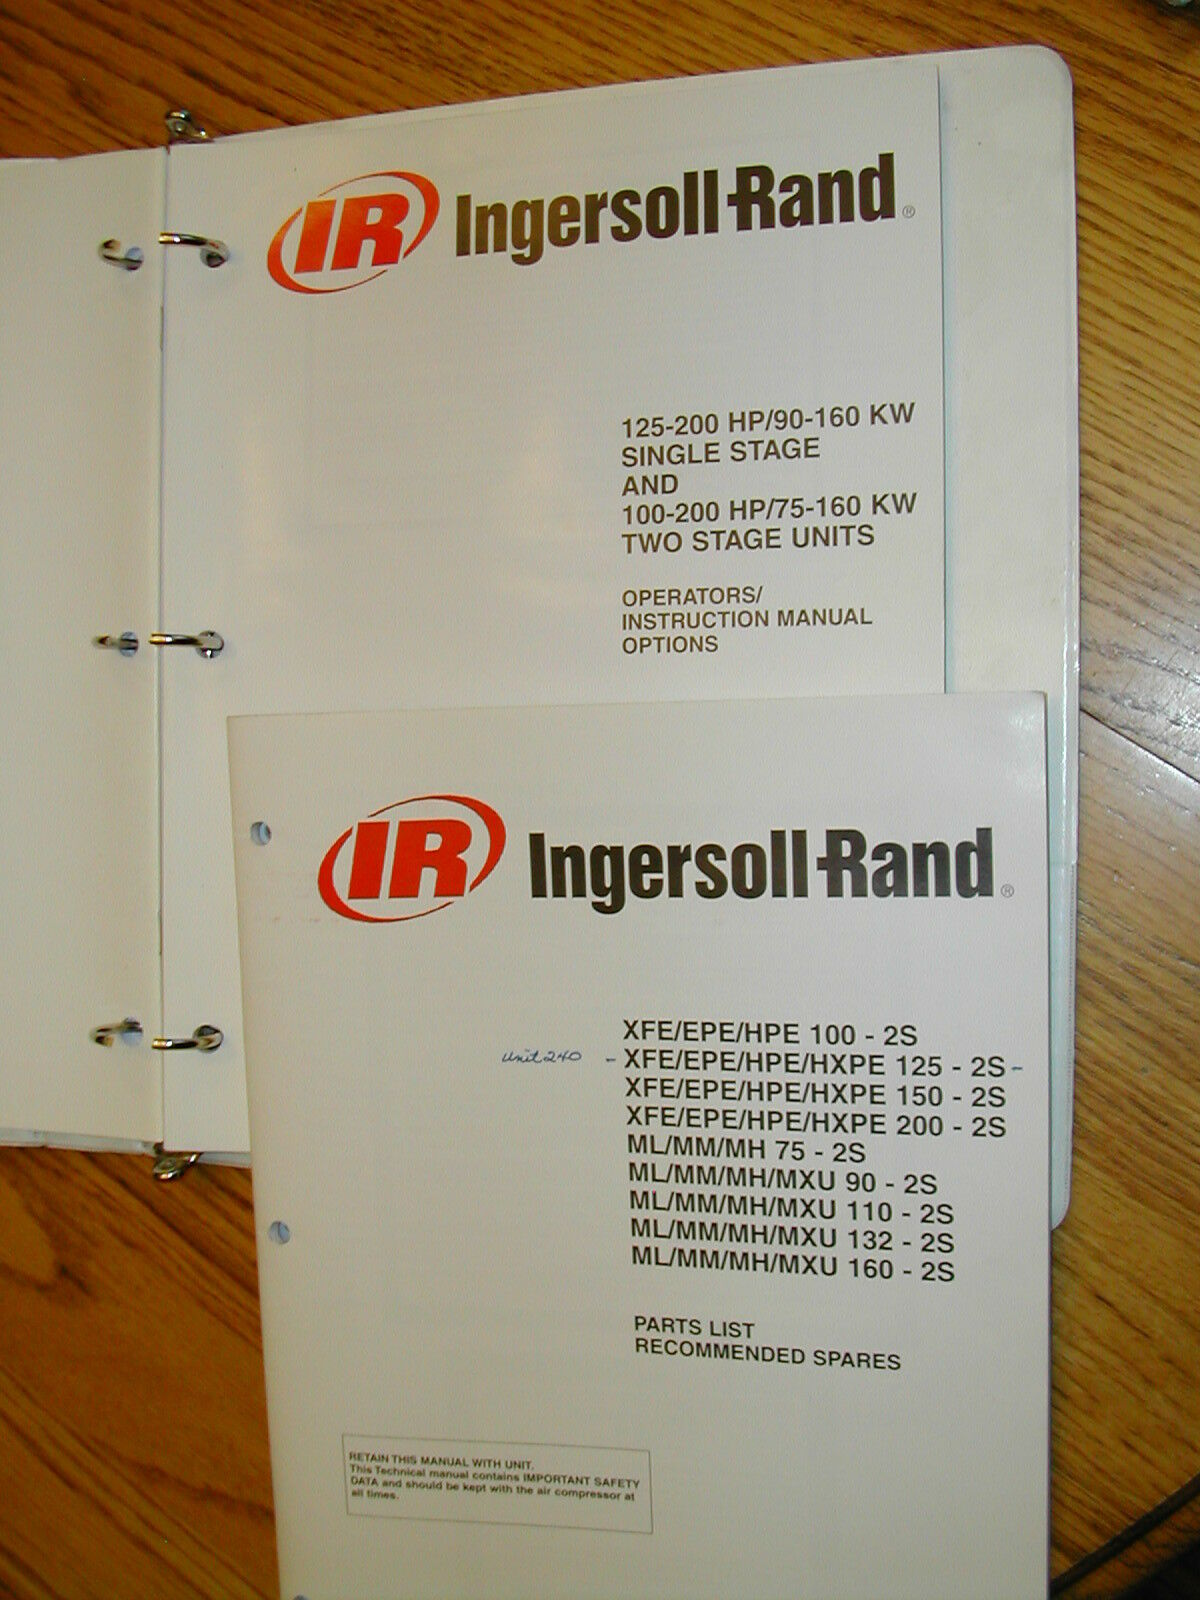 Ingersoll-Rand OPERATION PARTS MAINTENANCE MANUAL AIR COMPRESSOR 100-200  CFM IR 1 of 1FREE Shipping See More